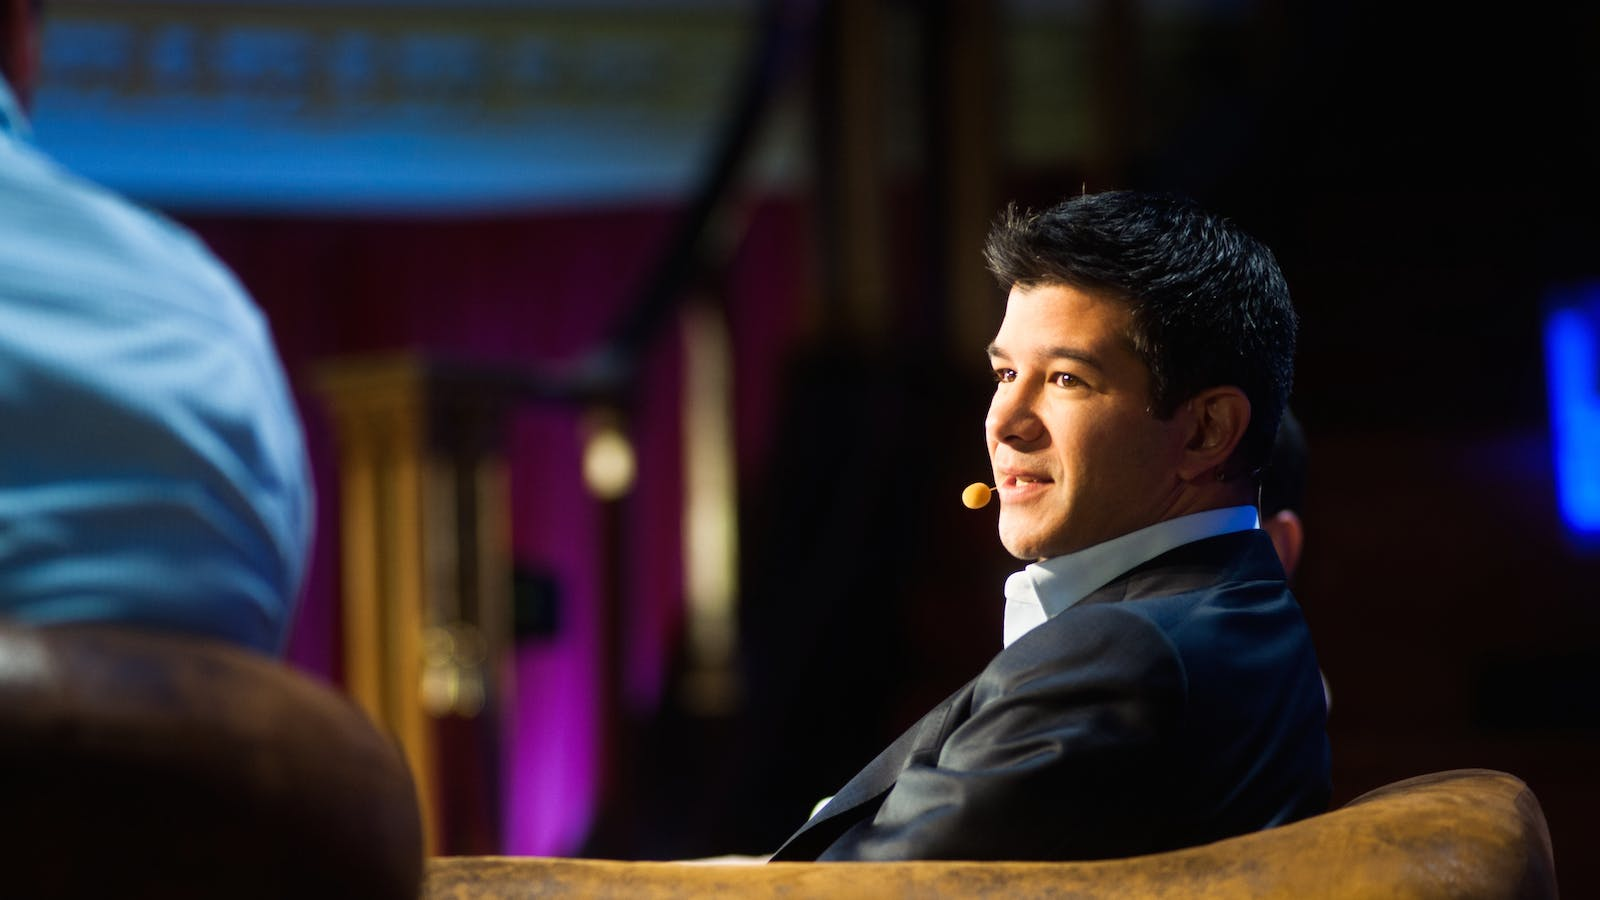 Uber CEO Travis Kalanick. Credit: LeWeb Conference via Flickr